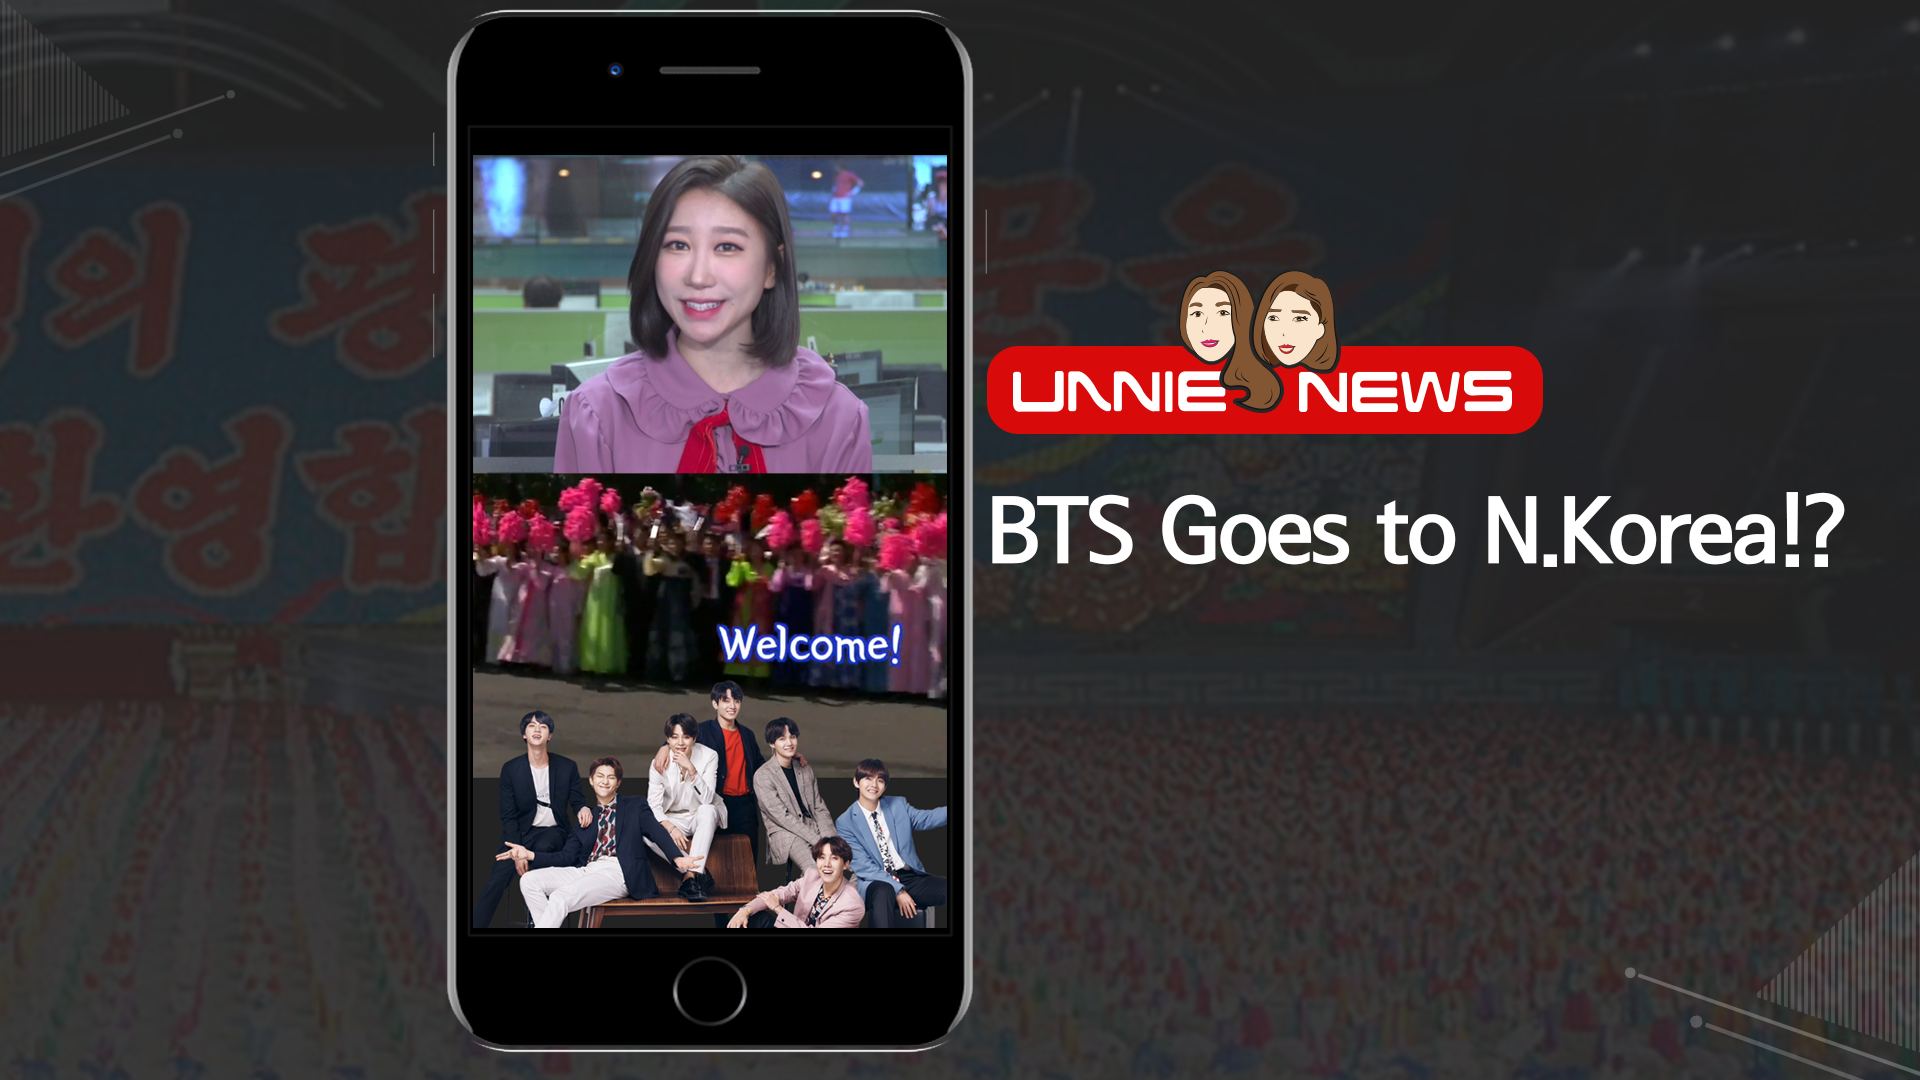 [UNNIE NEWS] BTS Goes to N.Korea!?